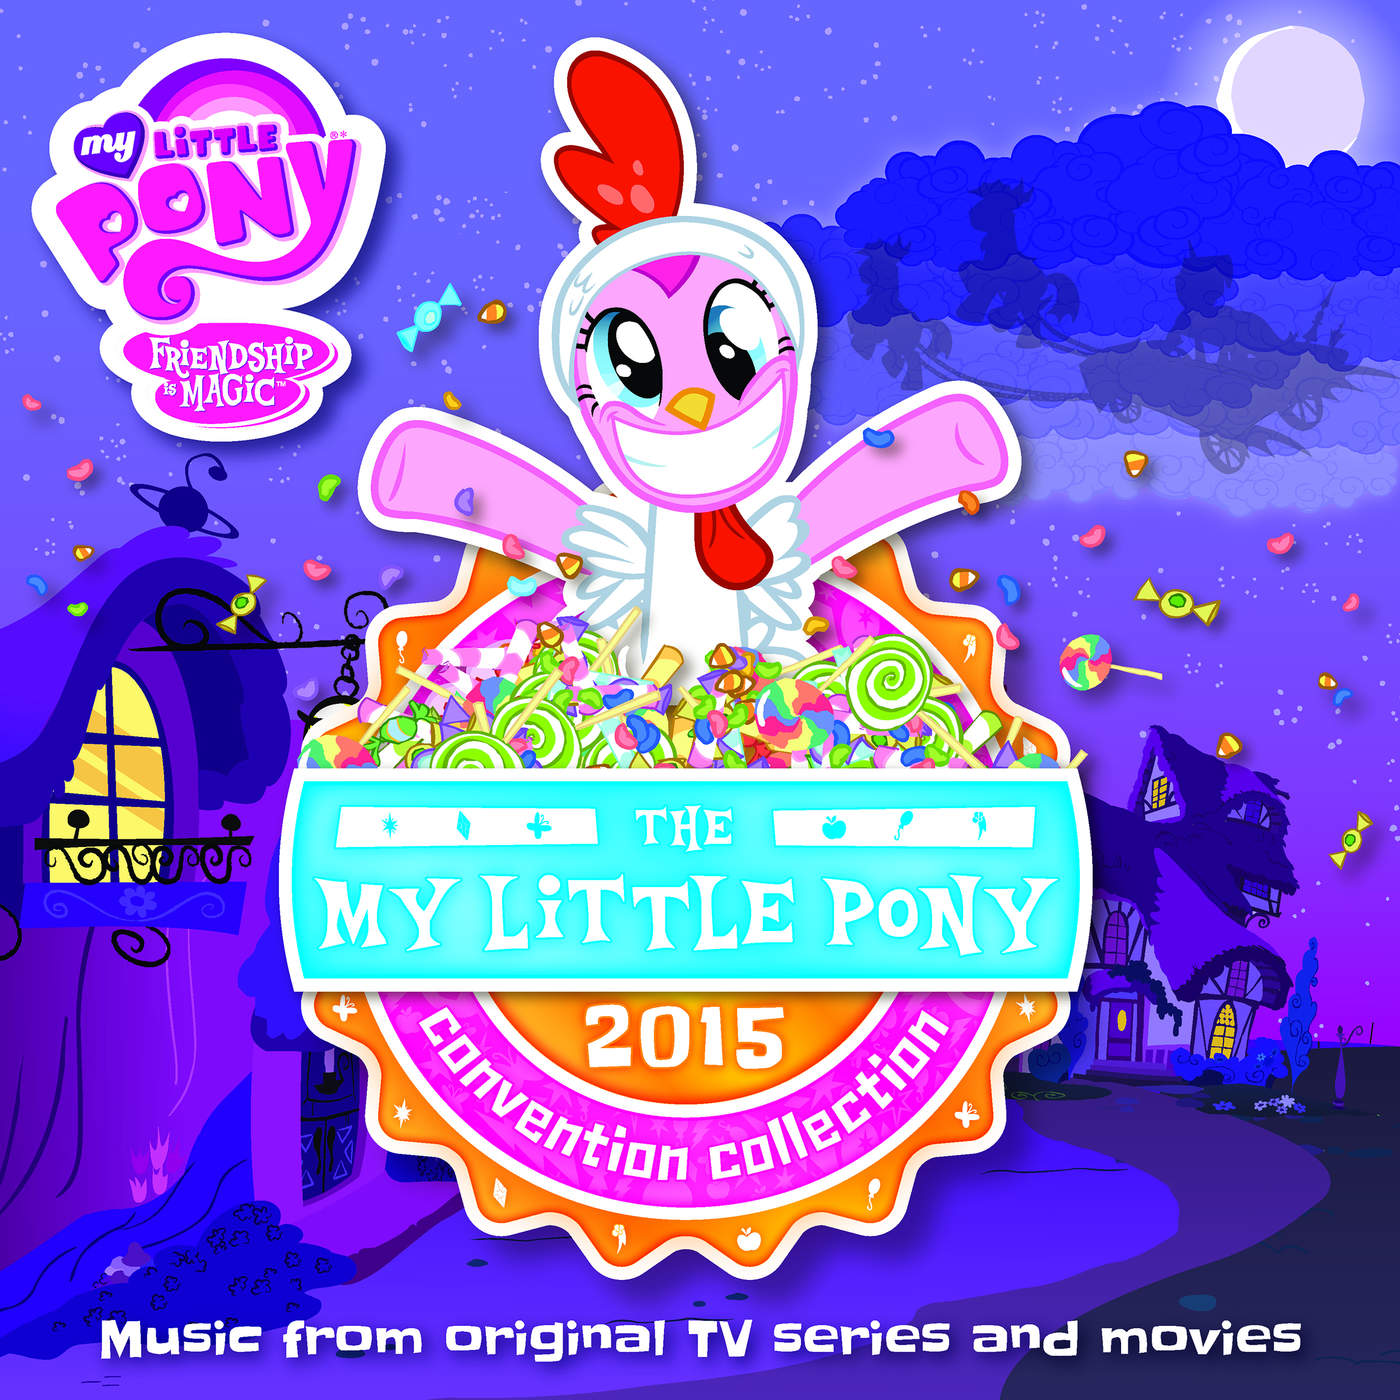 My little pony 2015 convention collection my little pony - My little pony wikia ...